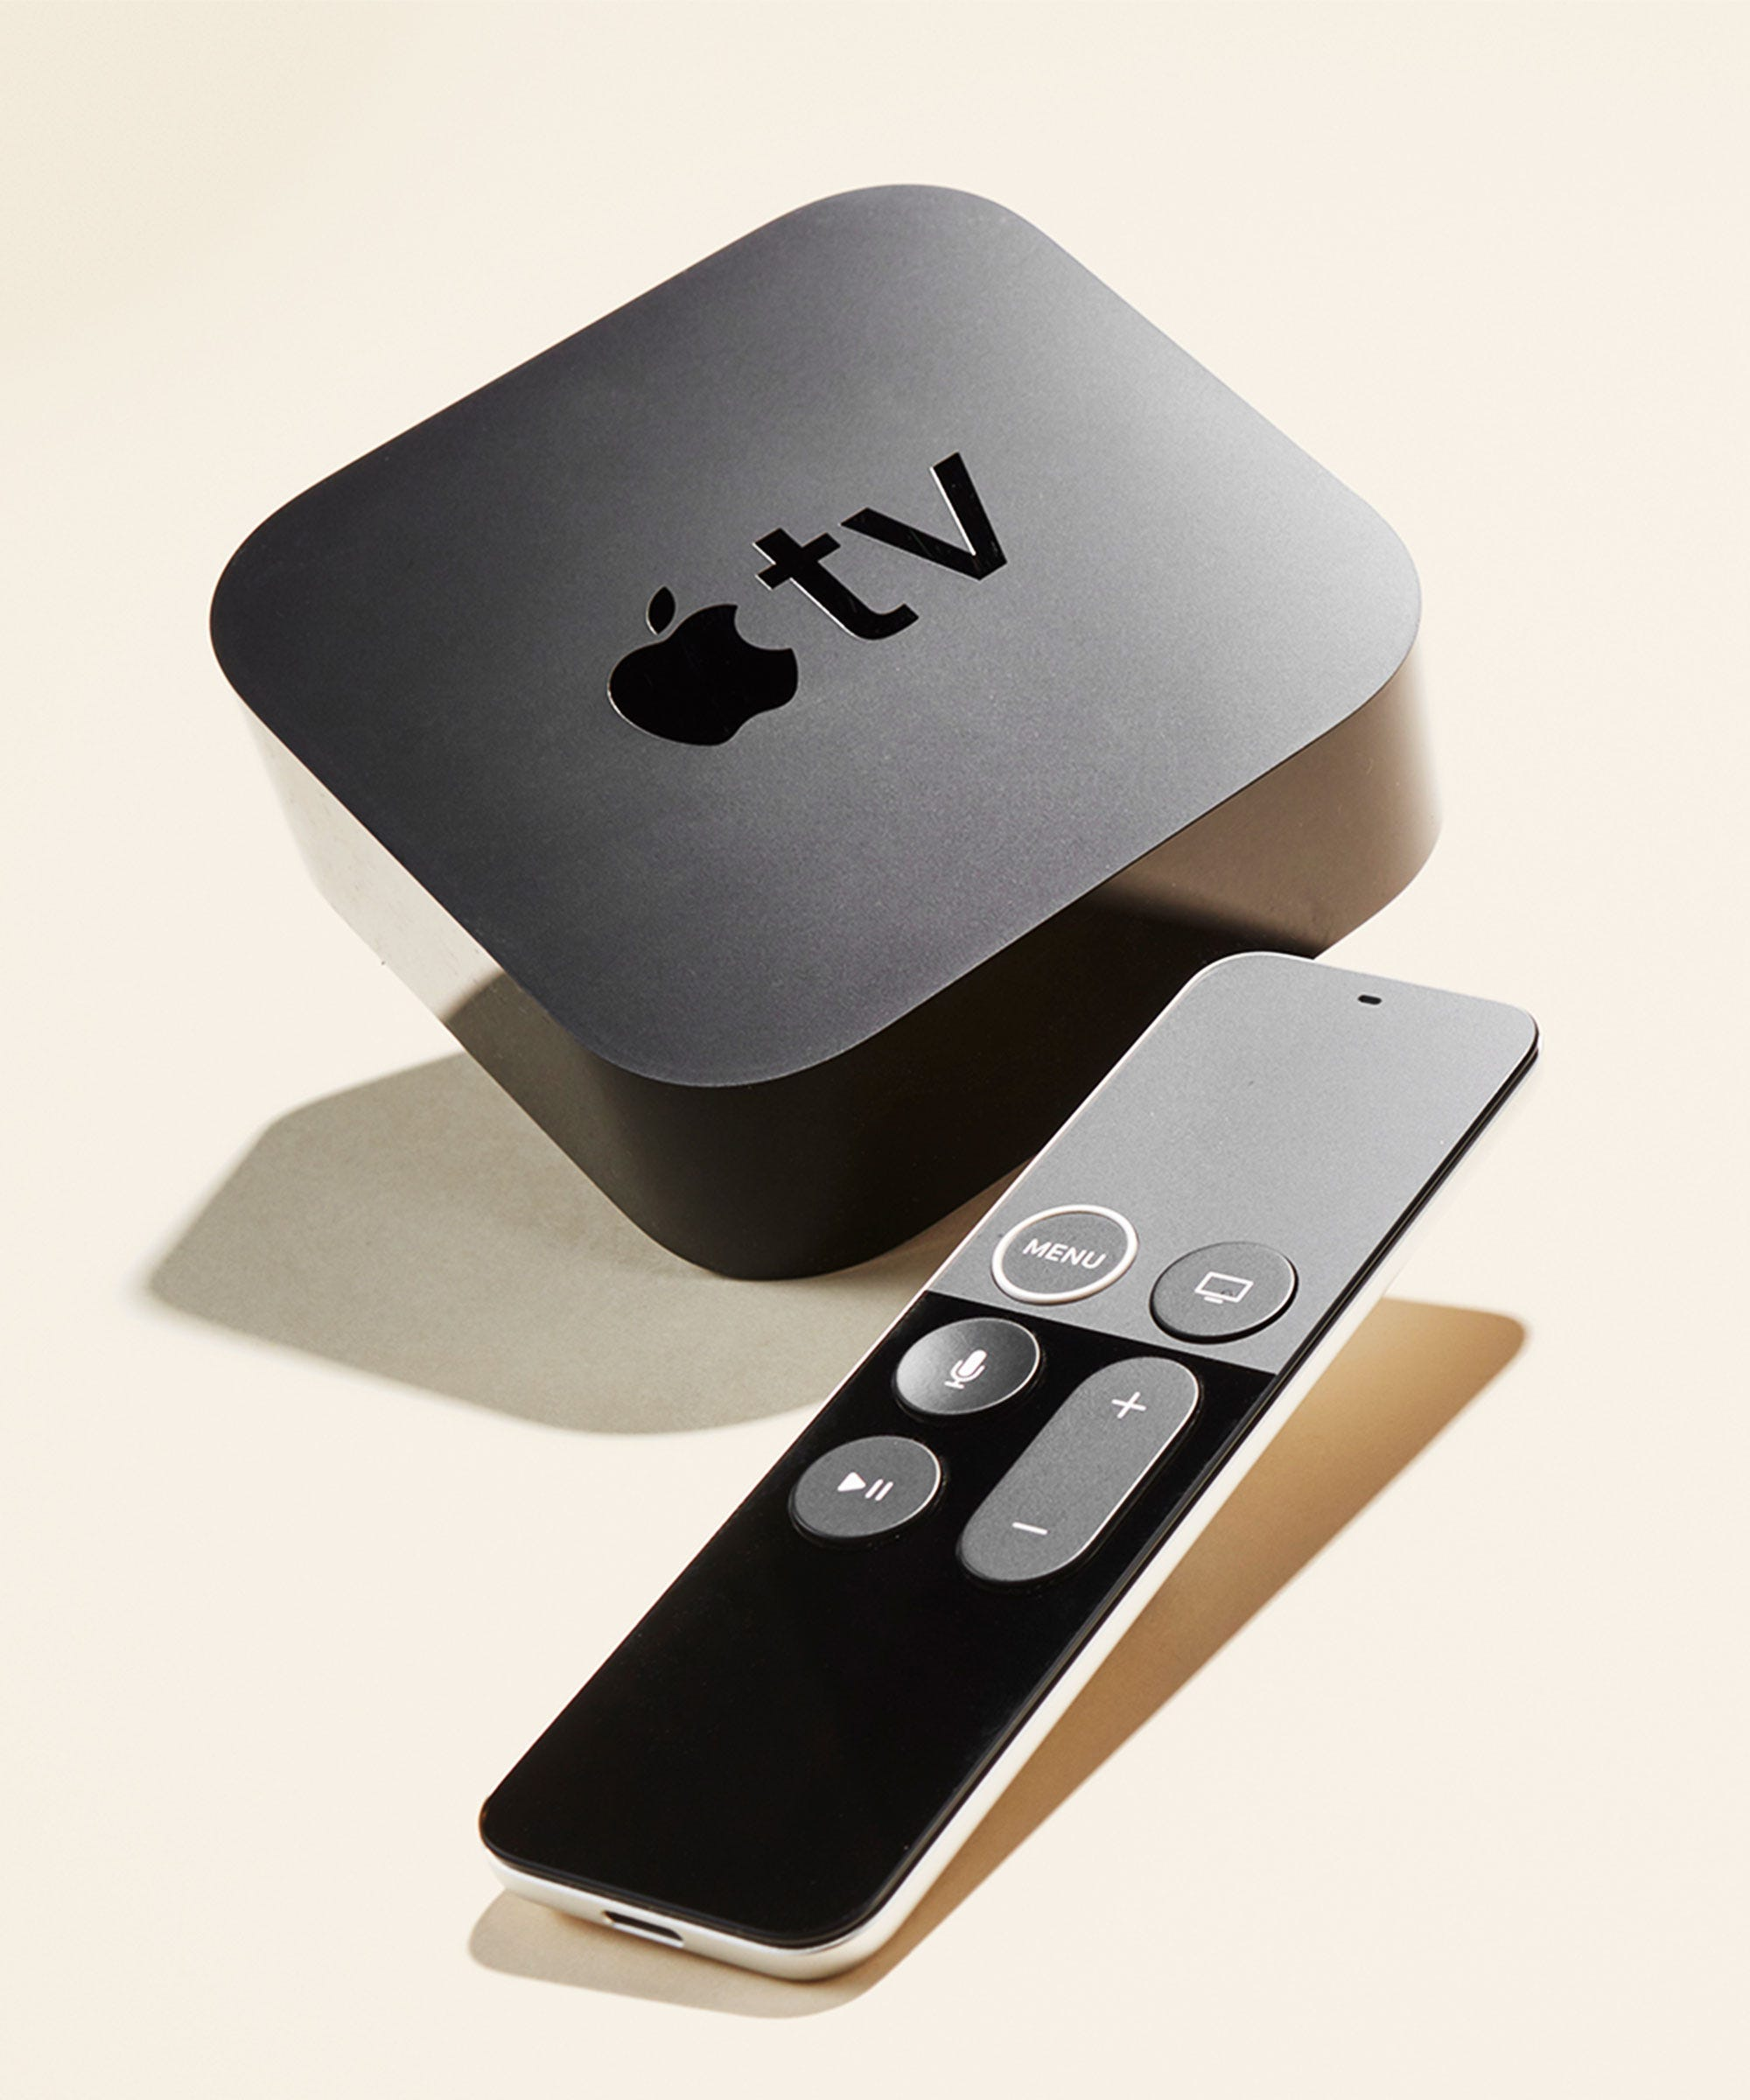 Do You Need An Apple TV To Watch Apple TV+?